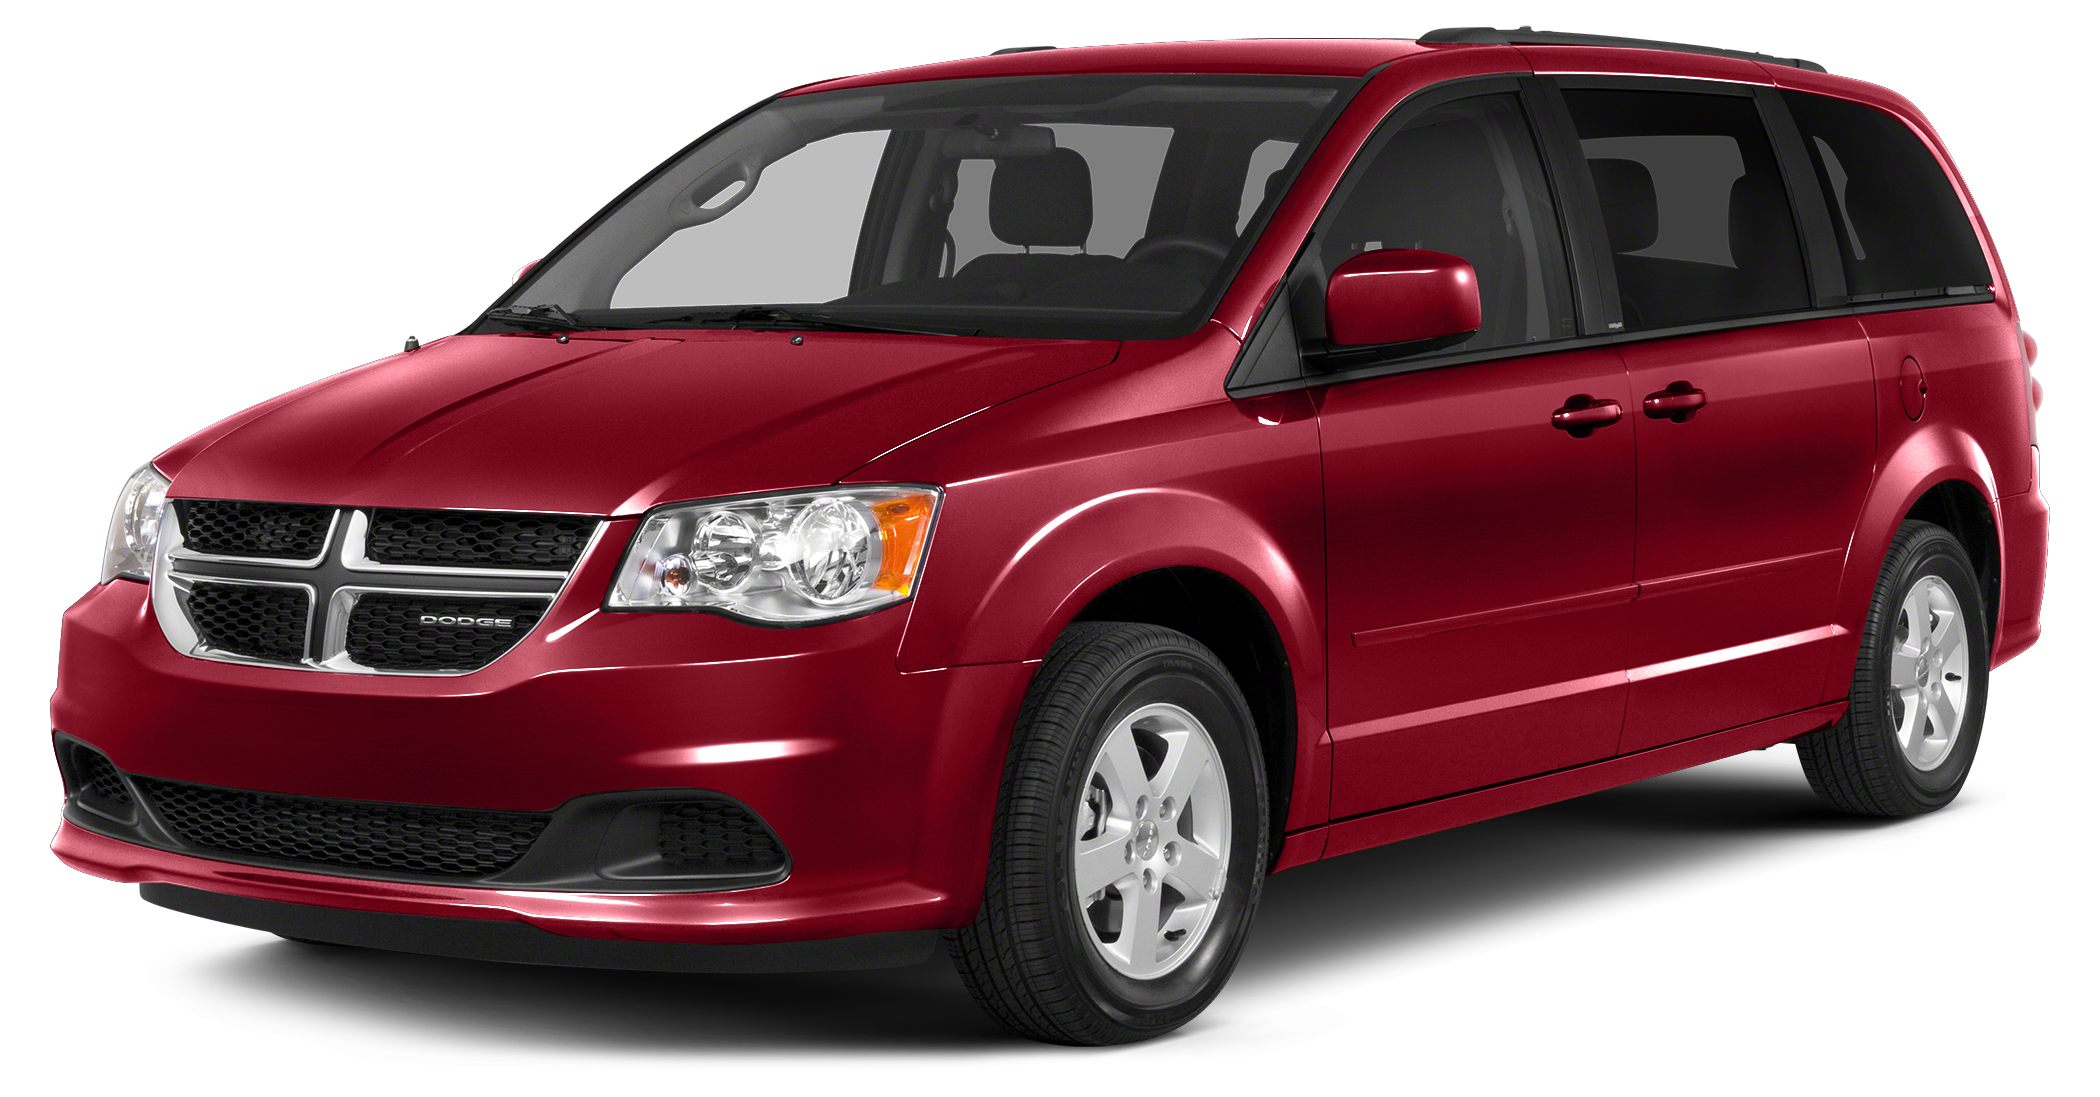 2014 Dodge Grand Caravan AVPSE American Value Pkg trim FUEL EFFICIENT 25 MPG Hwy17 MPG City Th